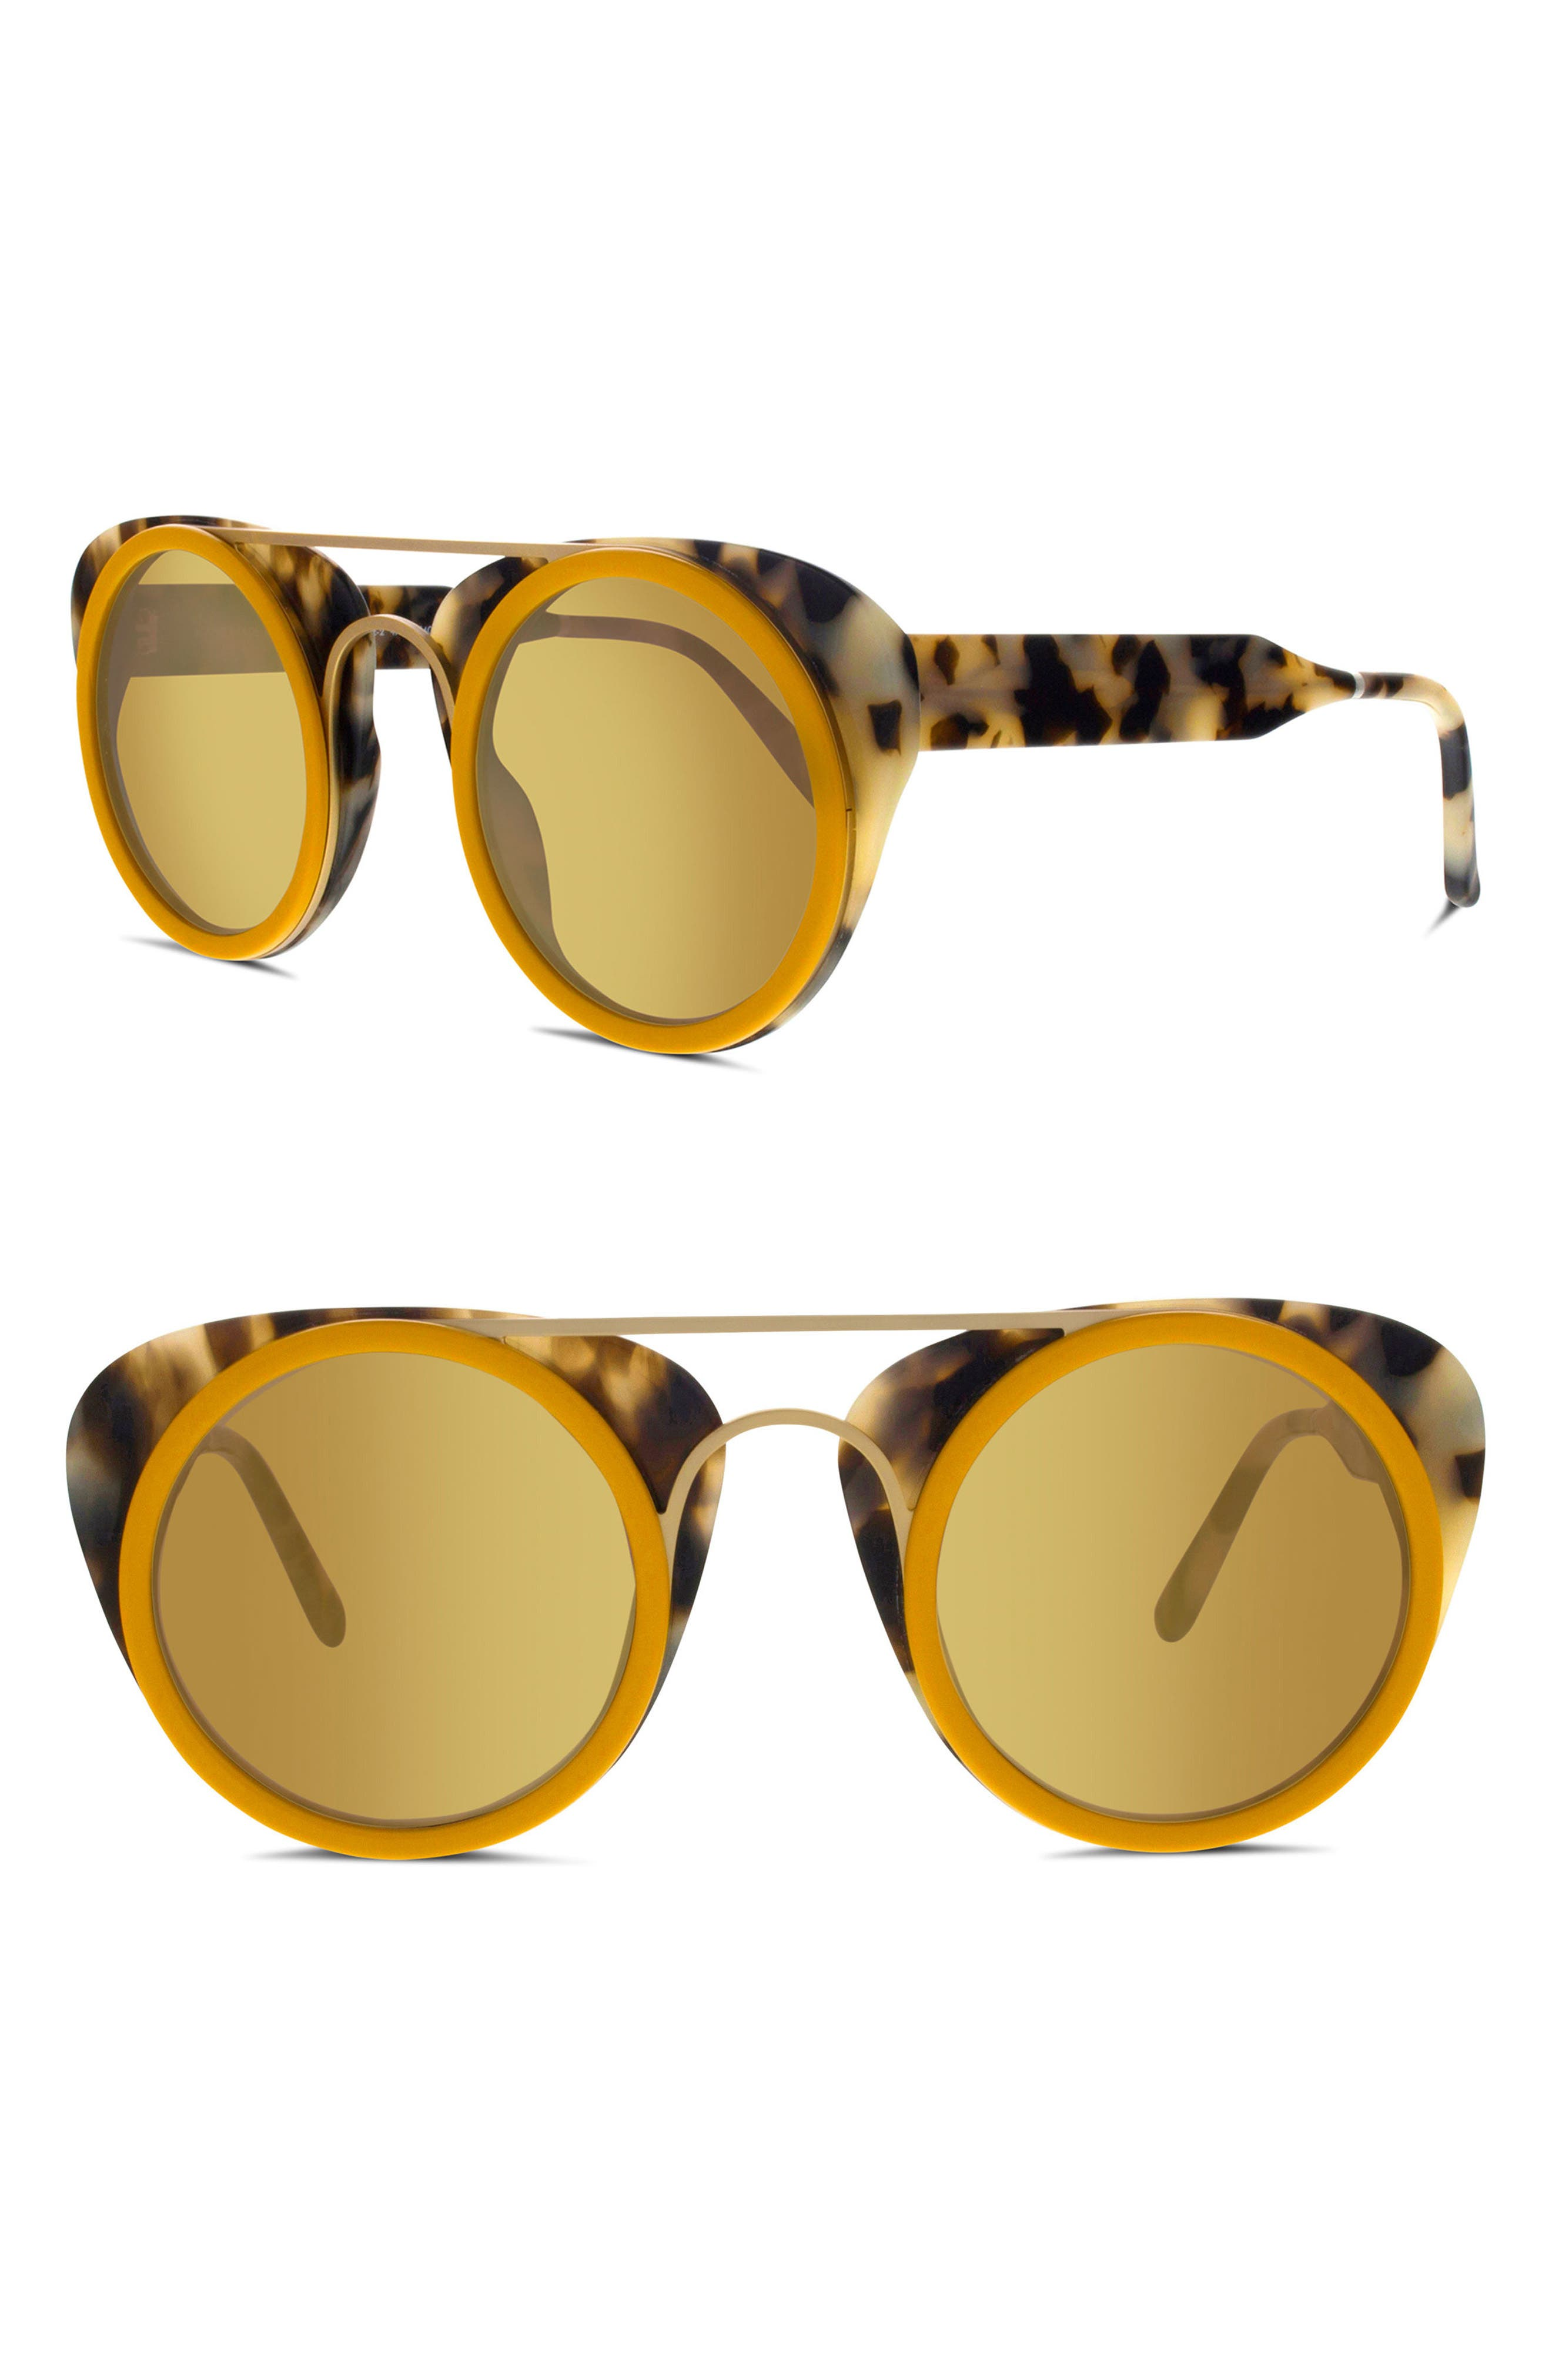 SMOKE X MIRRORS SODA POP 3 47MM ROUND SUNGLASSES - MOUTARD/ GOLD MIRROR